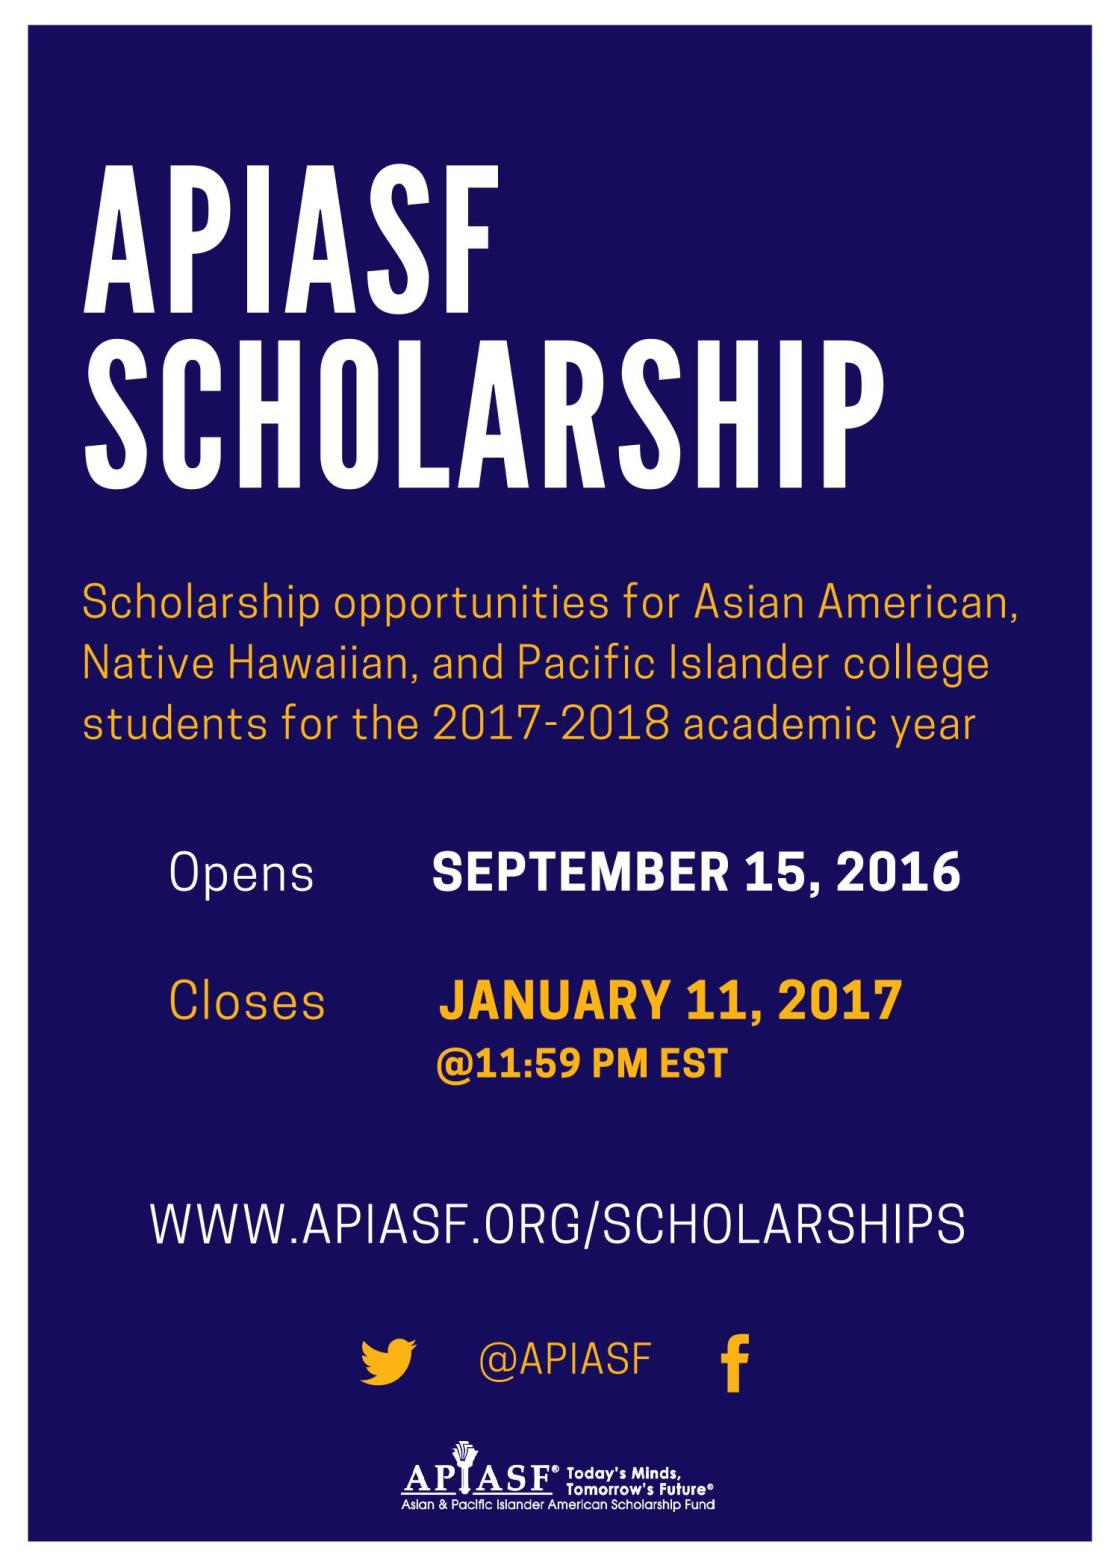 fra americanism essay scholarship Scholarship description ra sponsors an annual essay contest to promote the spirit of americanism and patriotism among our country's youth fra's americanism essay contest is open to all students, grades 7 through 12, including those who are home-schooled.